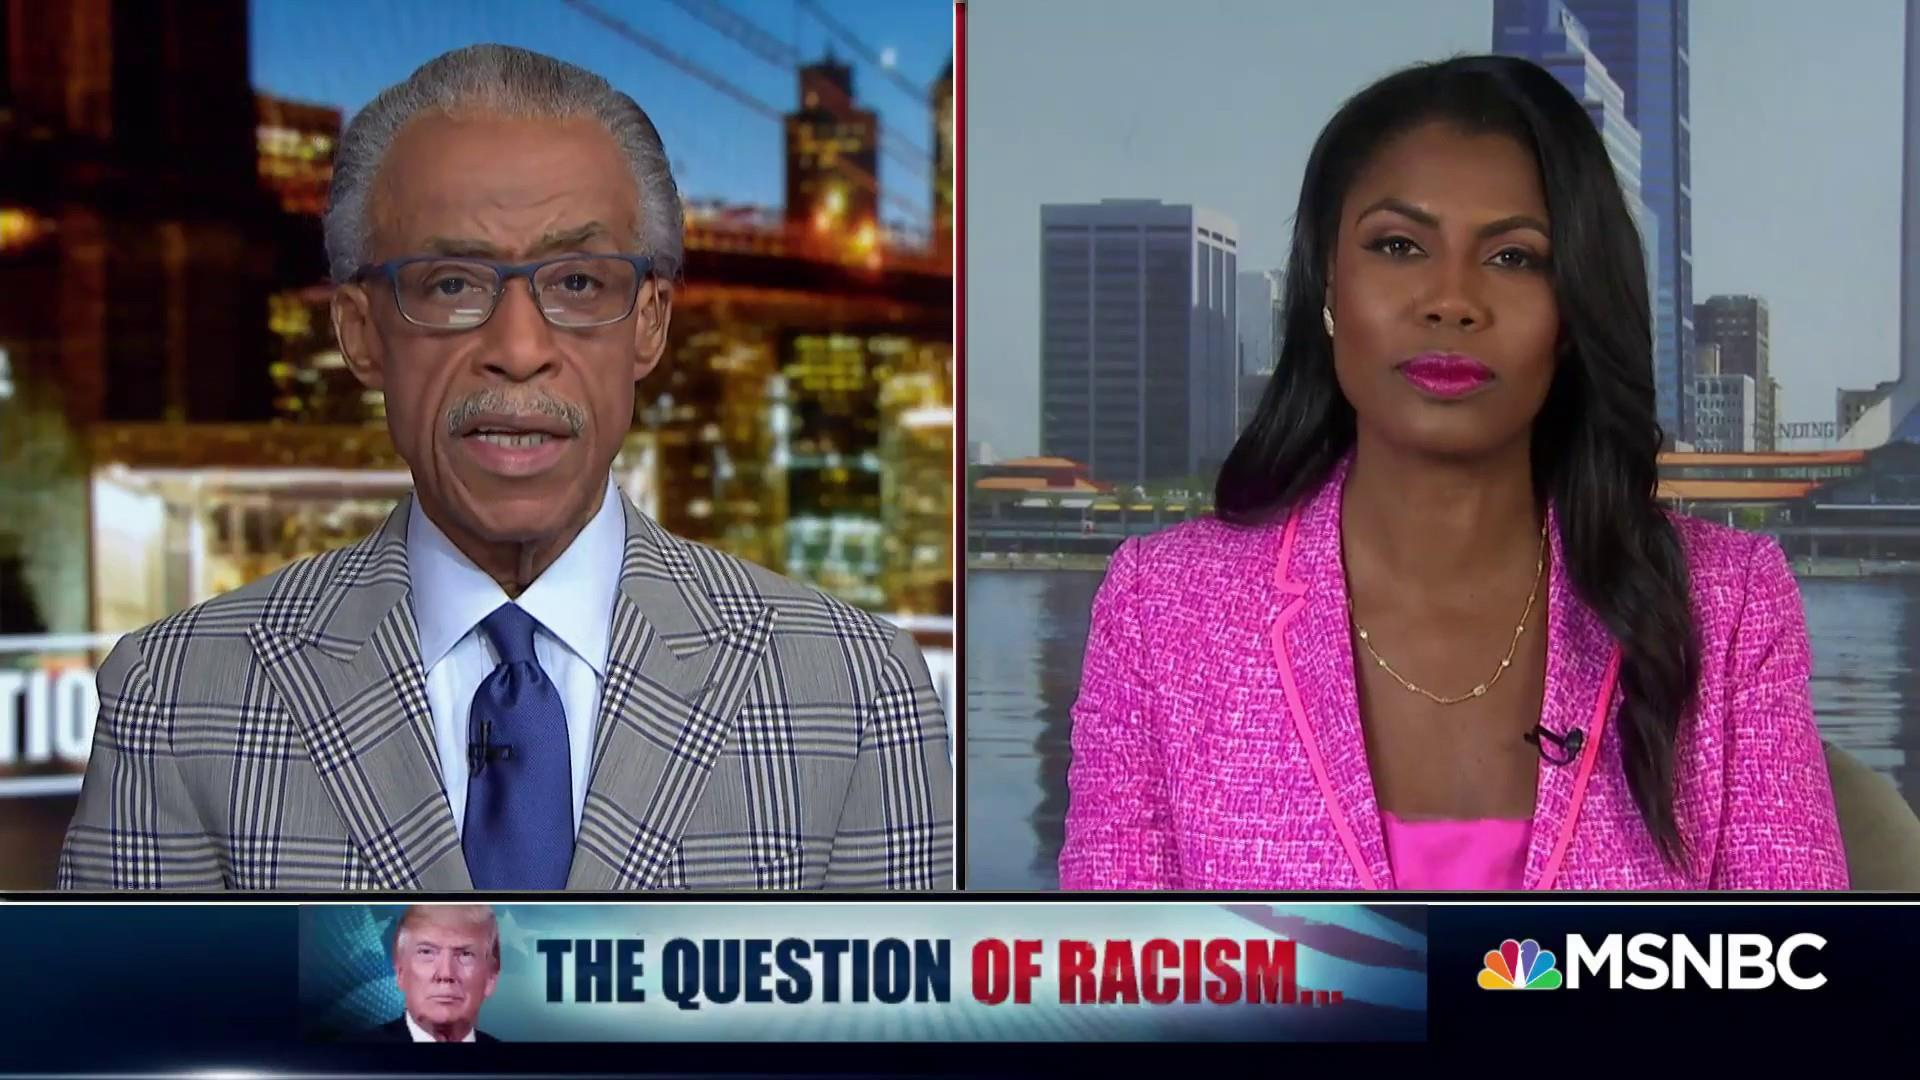 Omarosa: On The Question of Racism